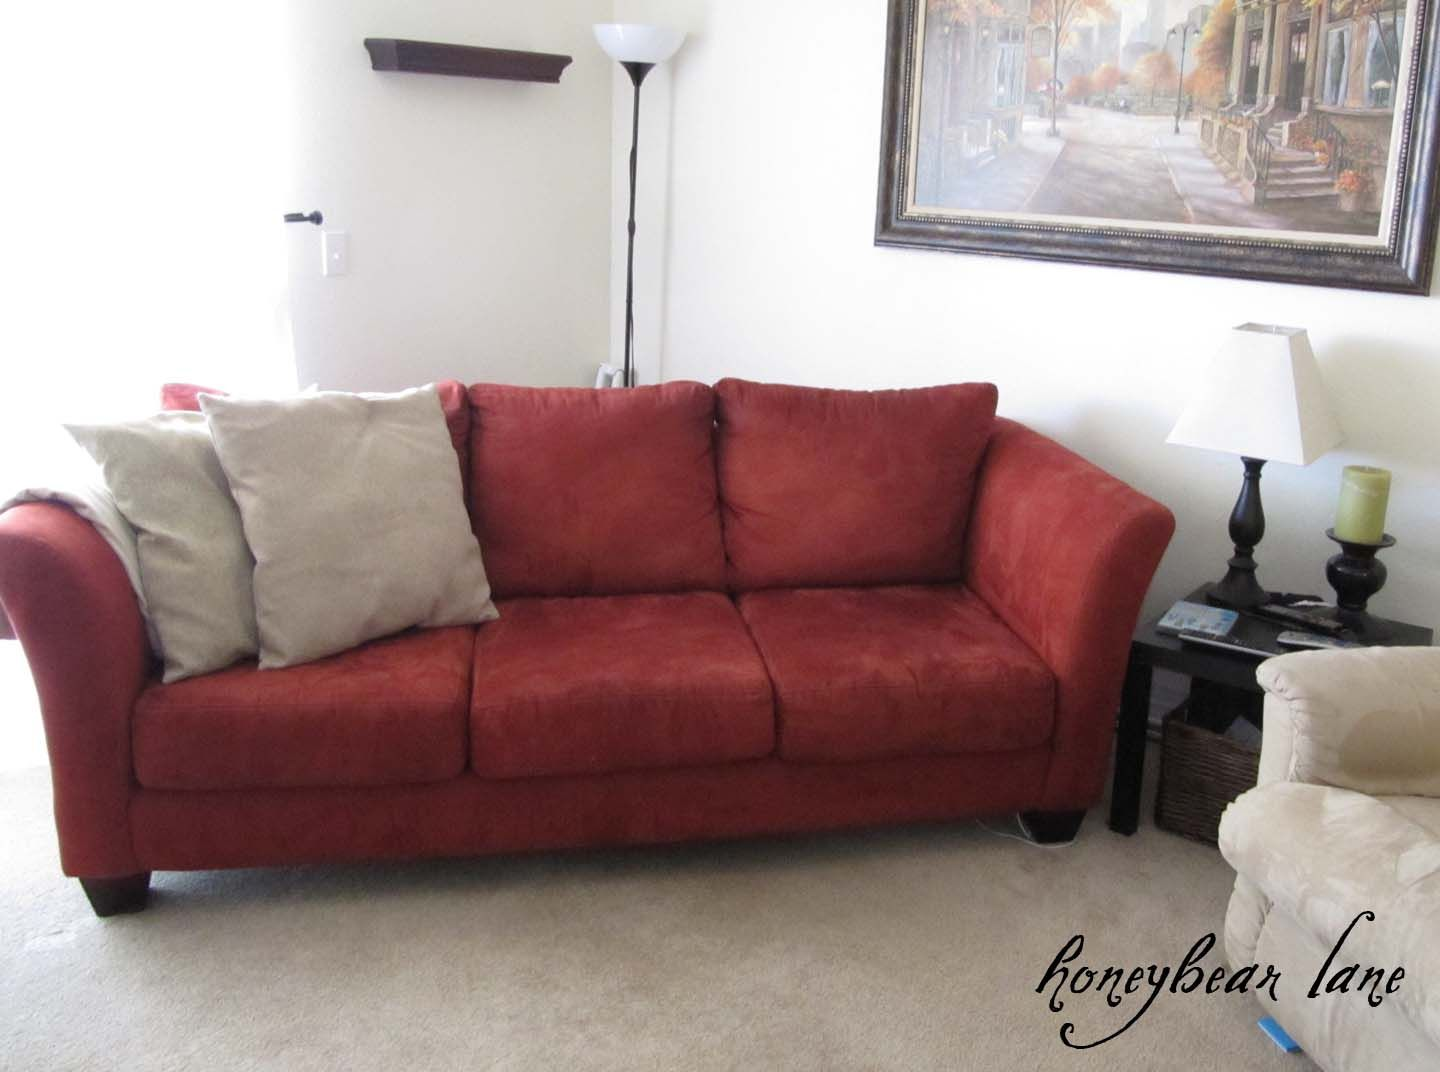 How To Make A Couch Slipcover (Part 1)